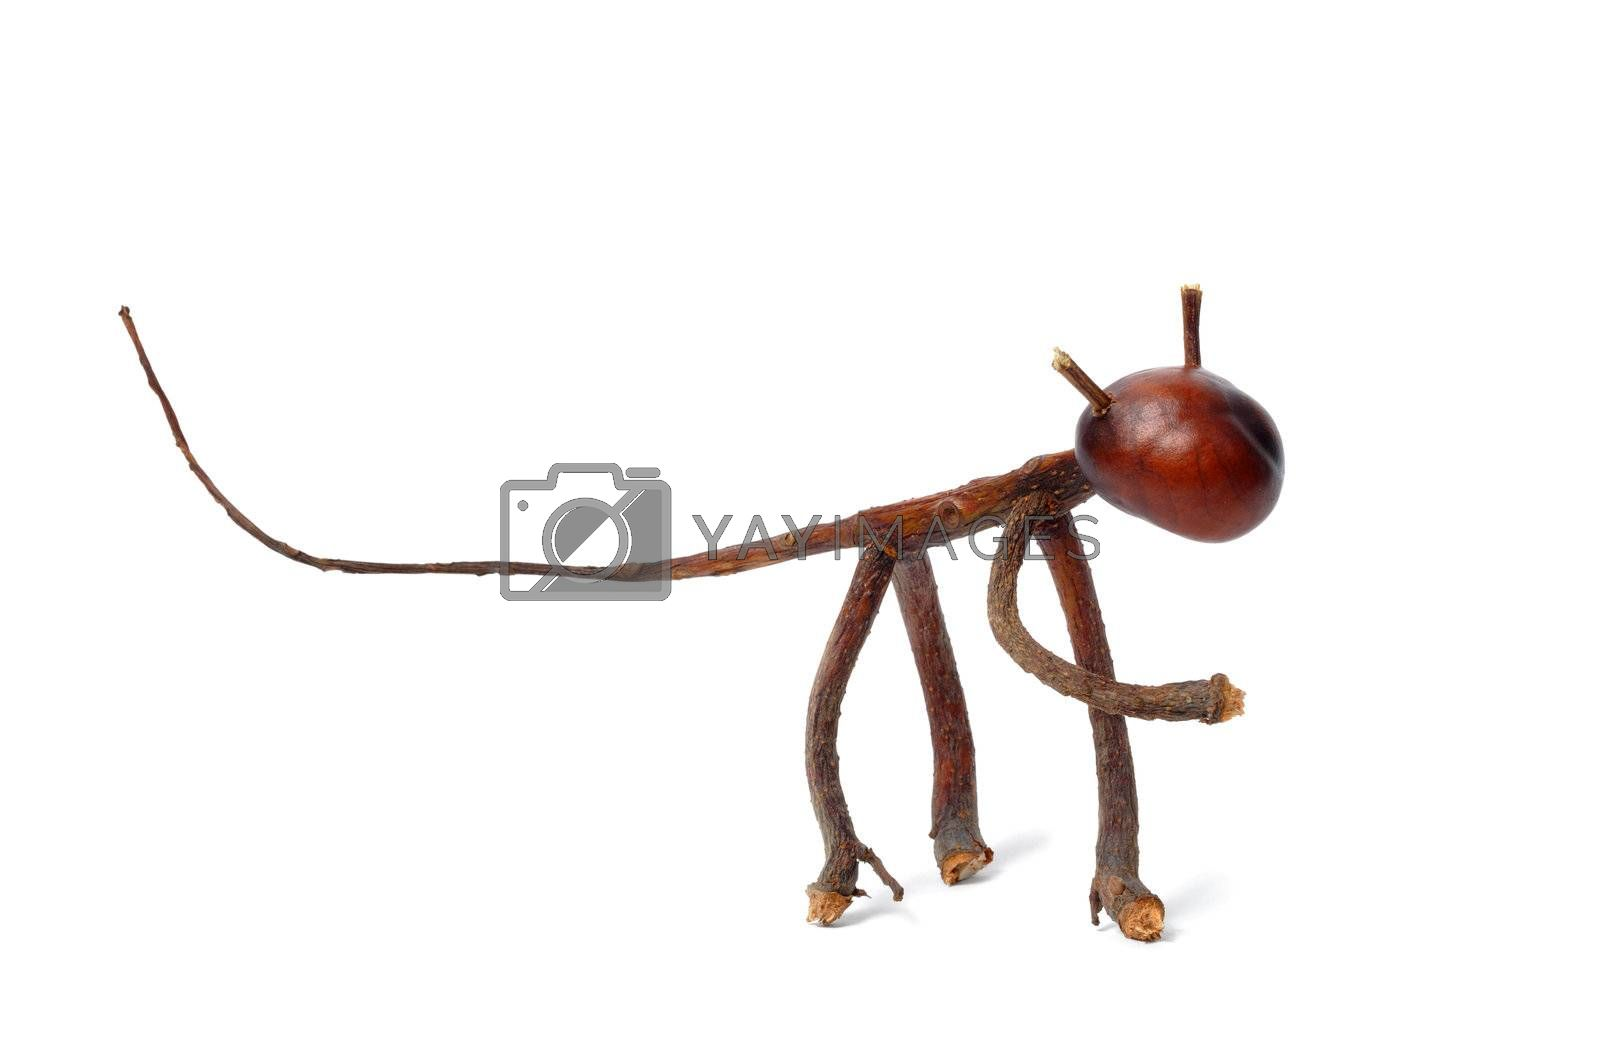 Toy made from chestnuts and matches on white background